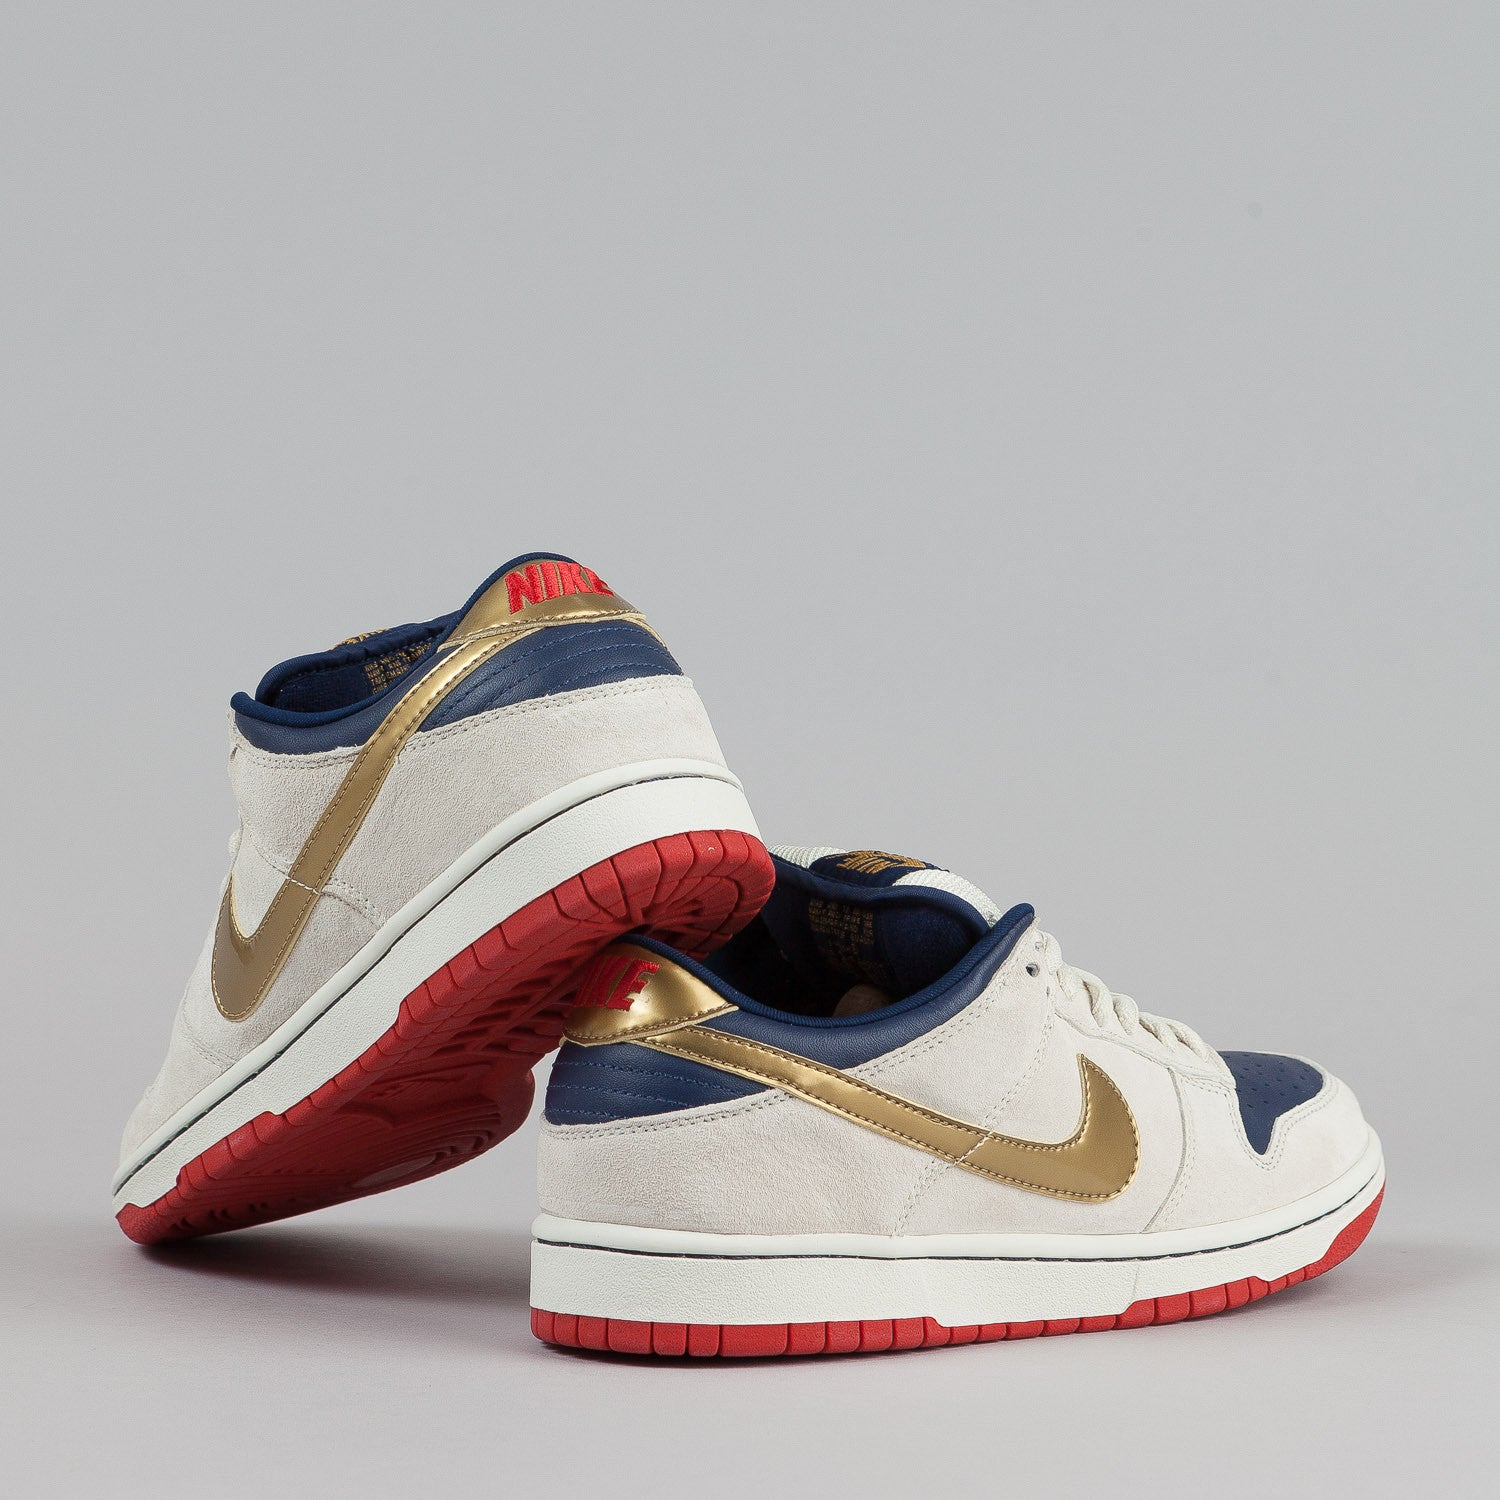 Nike SB Dunk Low Pro Shoes - Buff / Metallic Gold